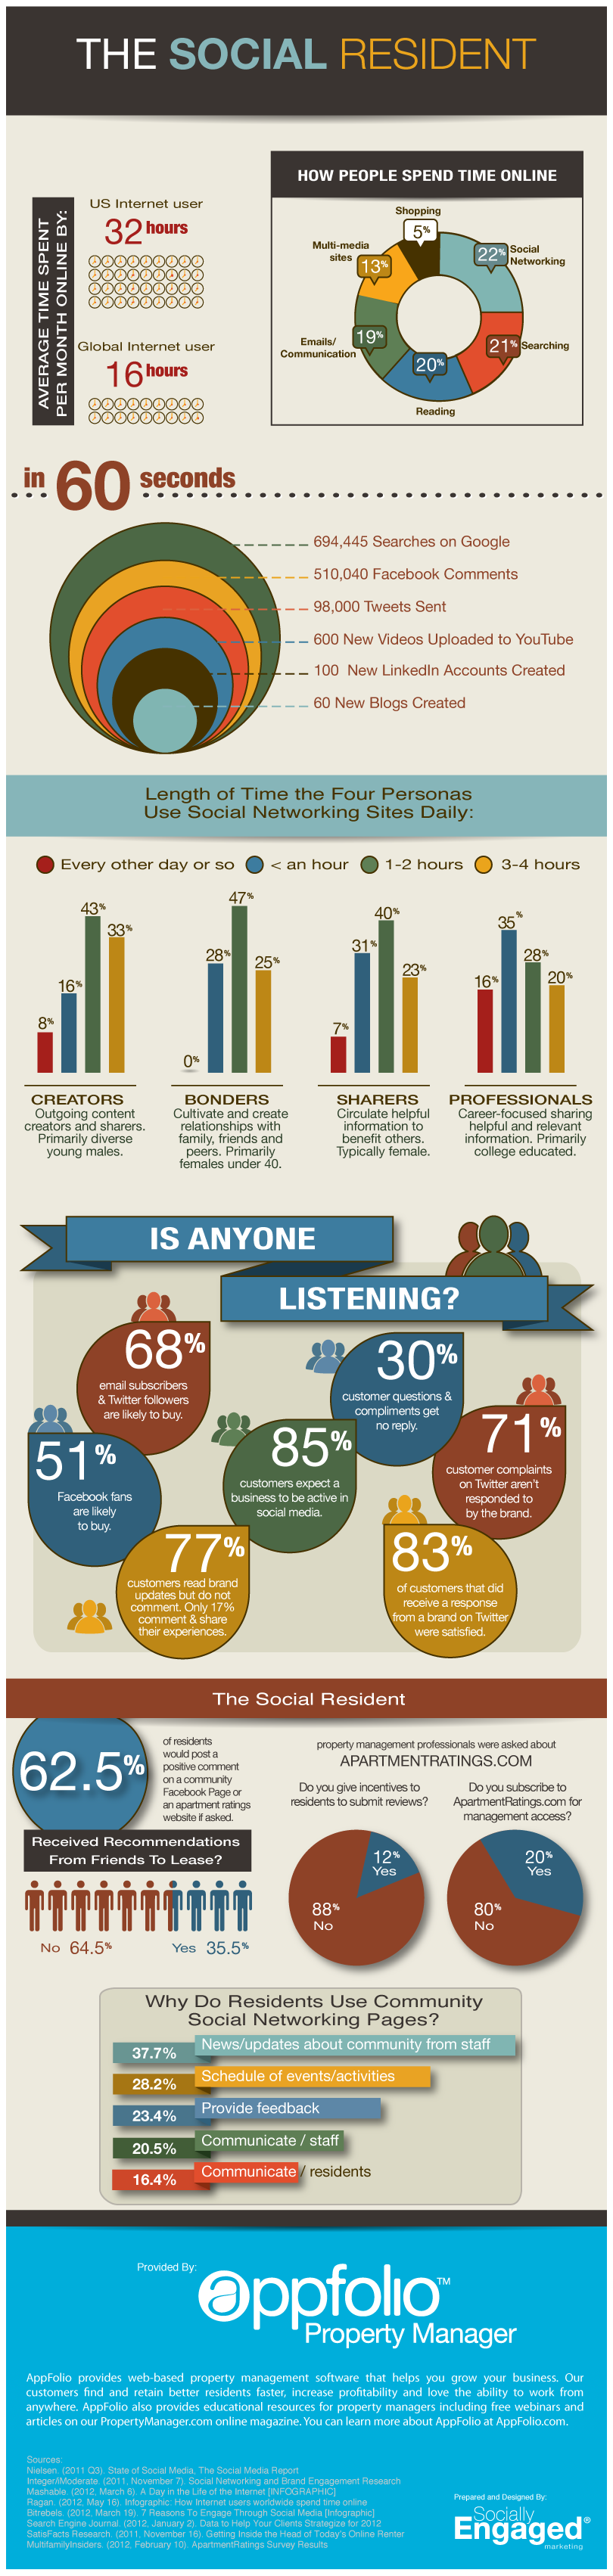 The Social Resident Infographic